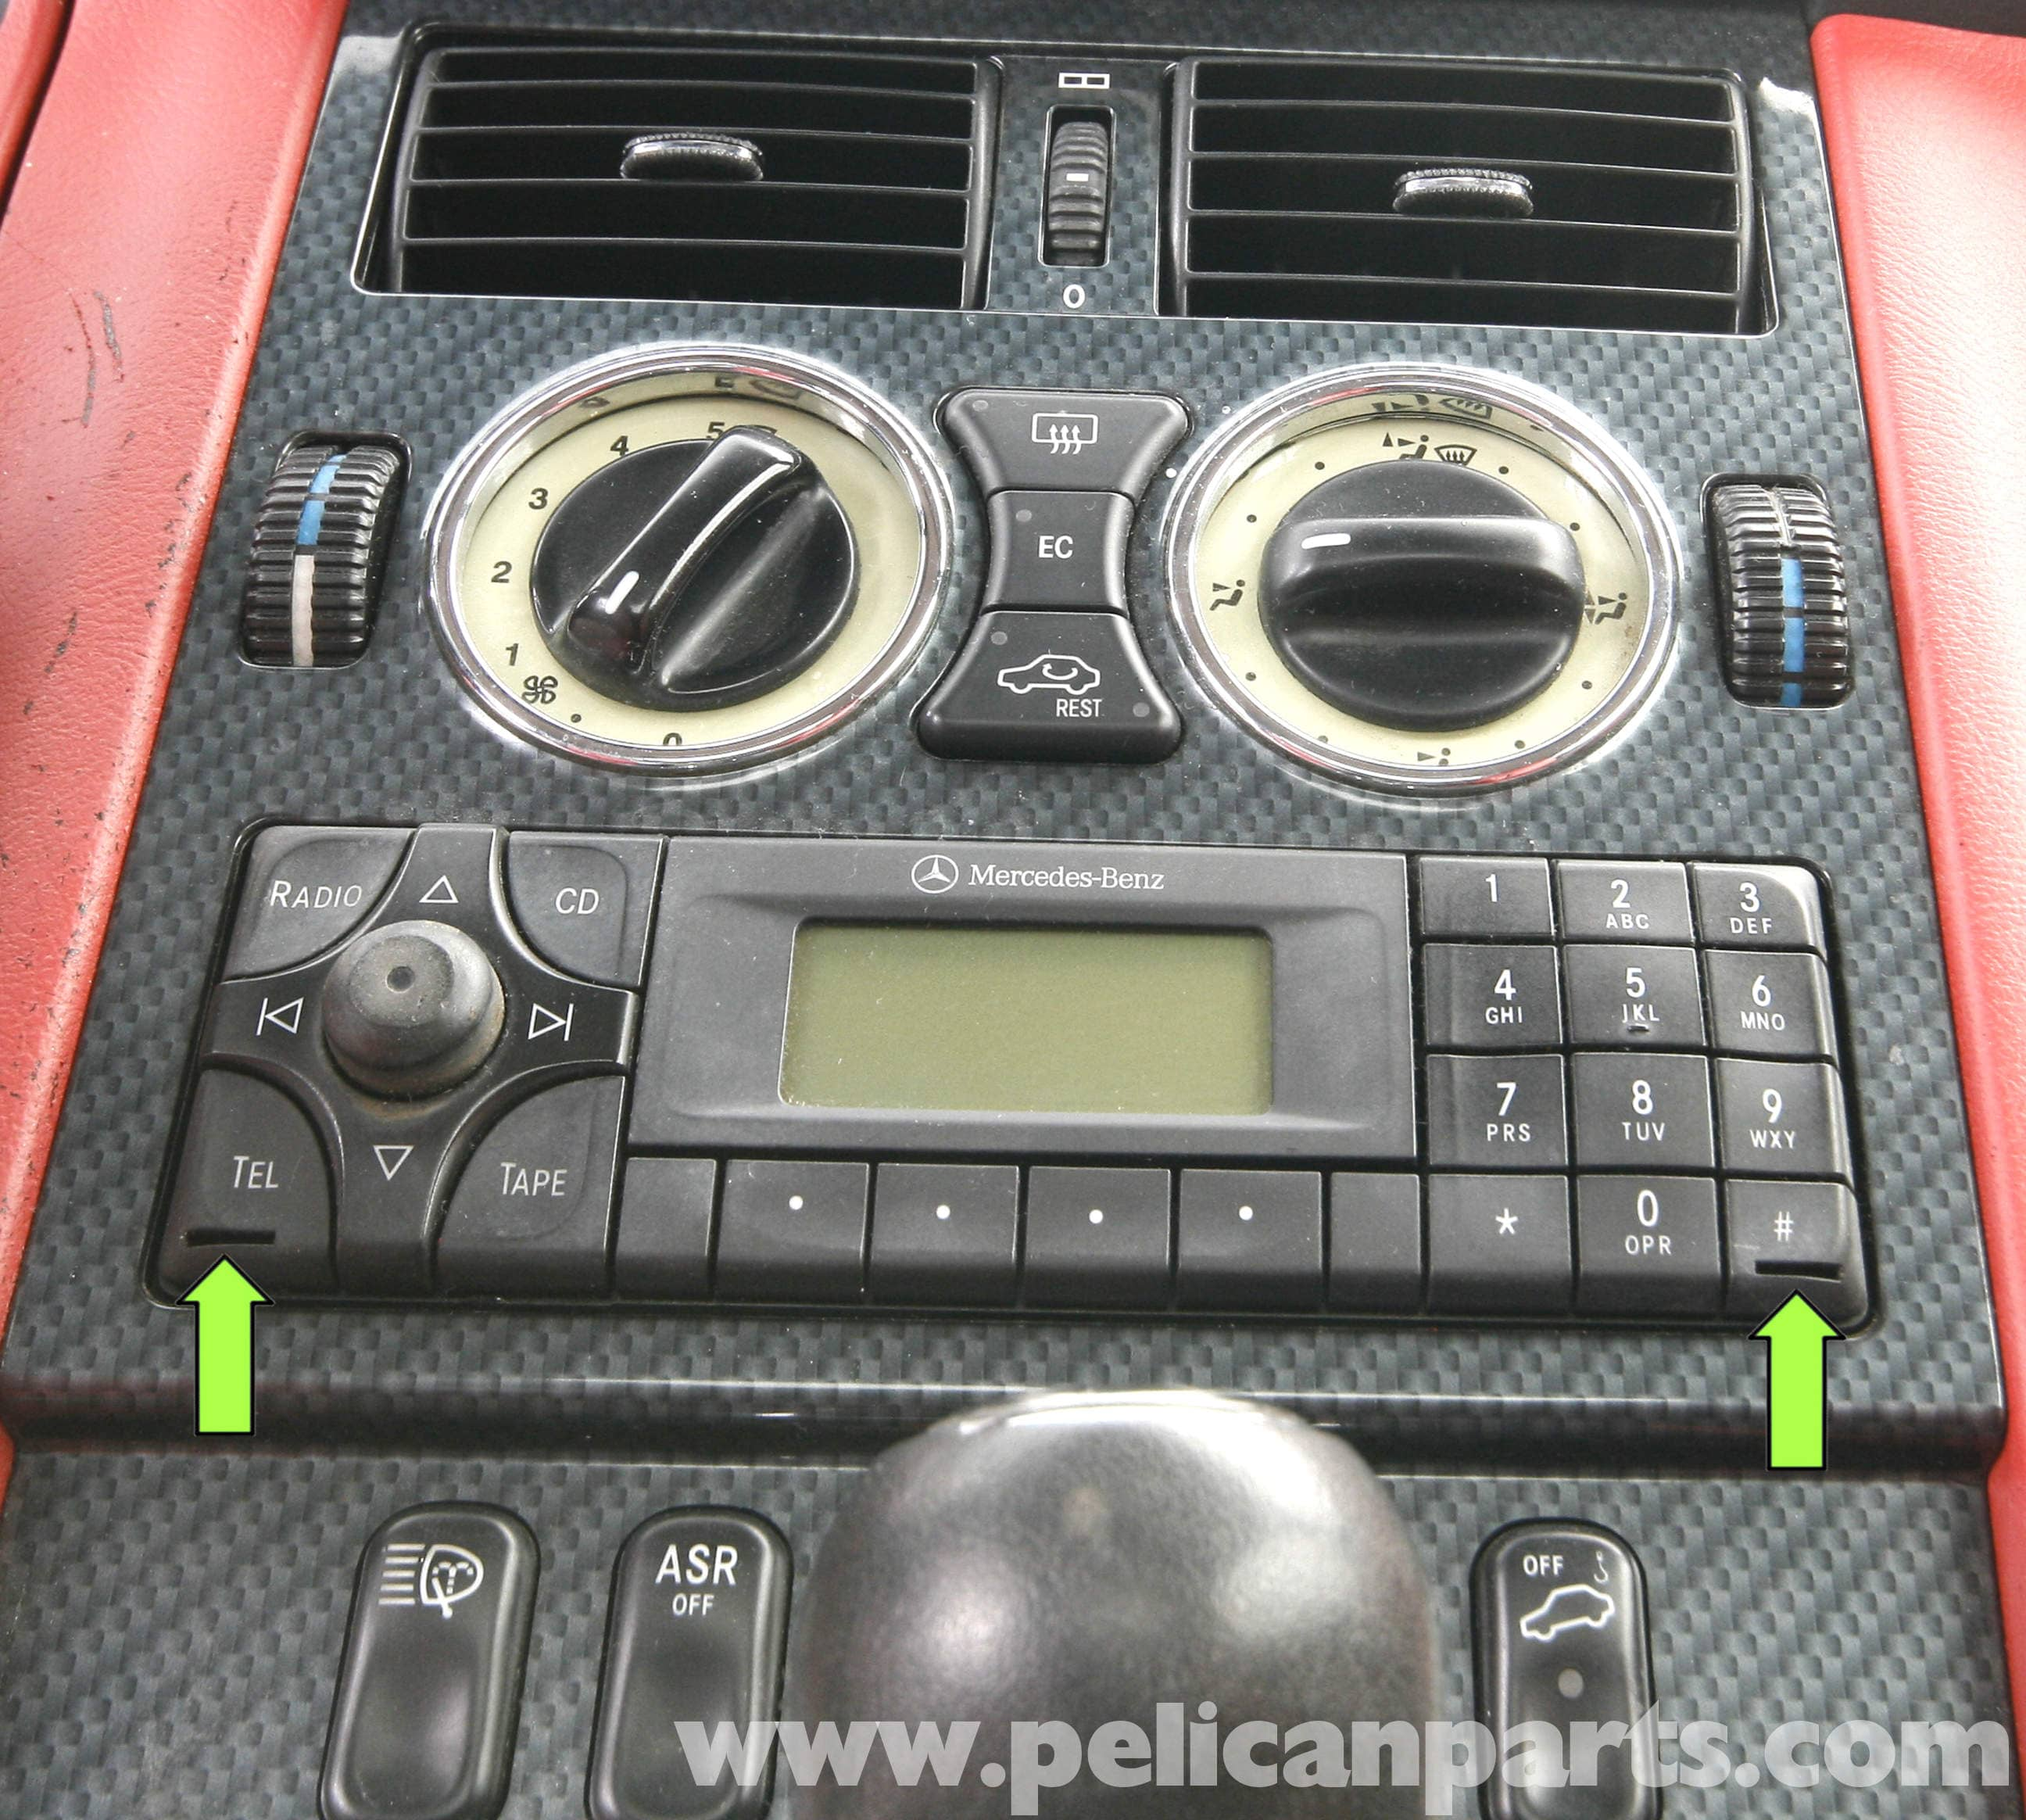 Mercedes Benz Slk 230 Radio Removal 1998 2004 Pelican Parts Diy Clk 250 Fuse Box Large Image Extra